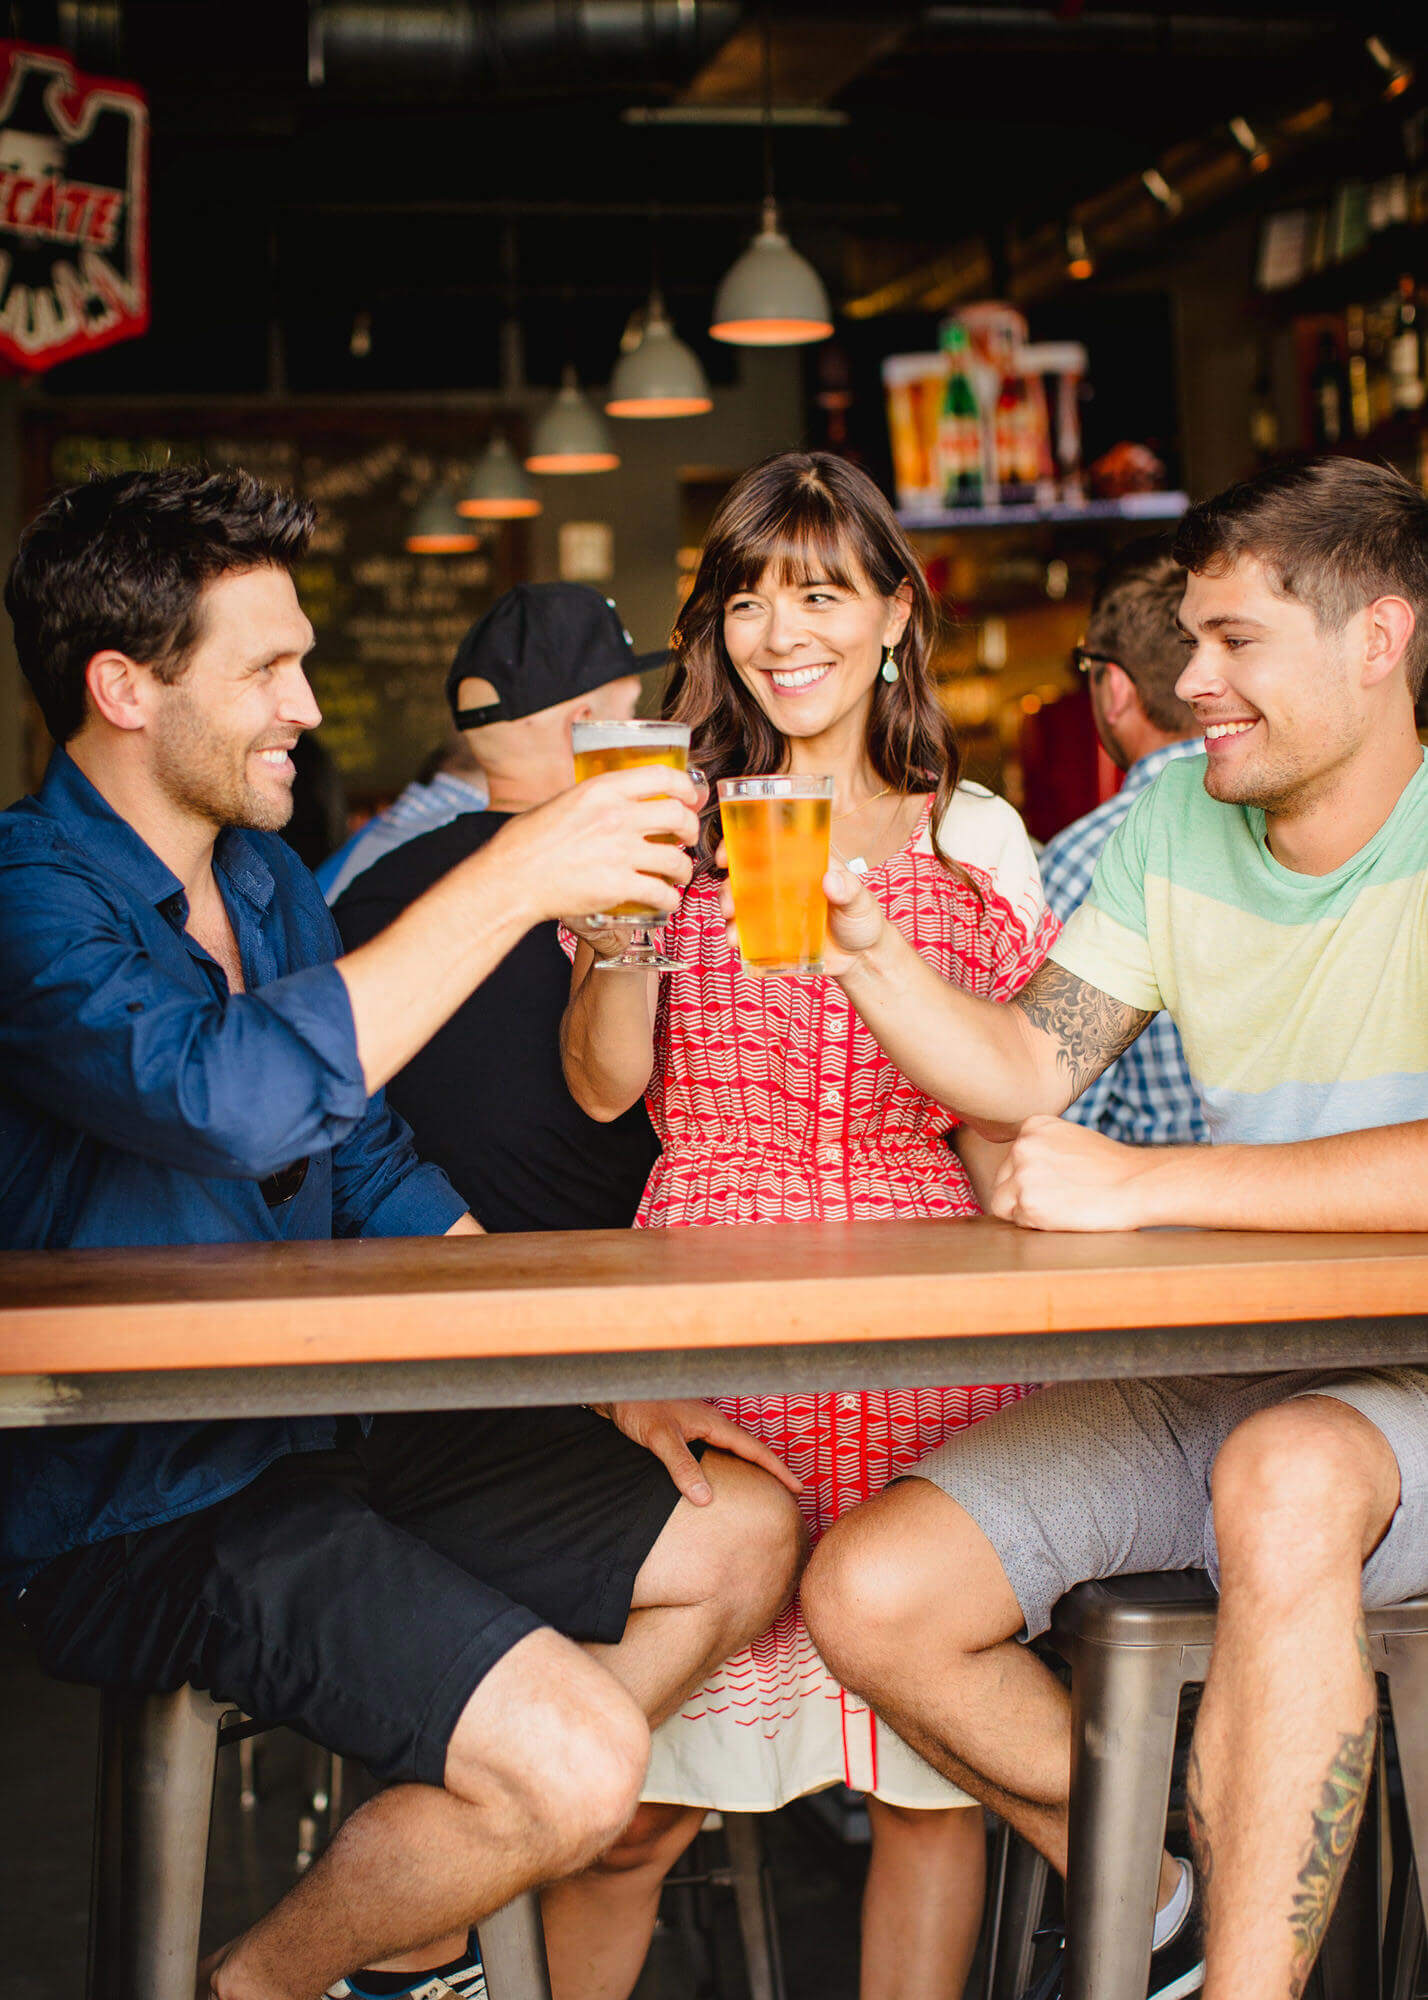 Friends with beers at restaurant